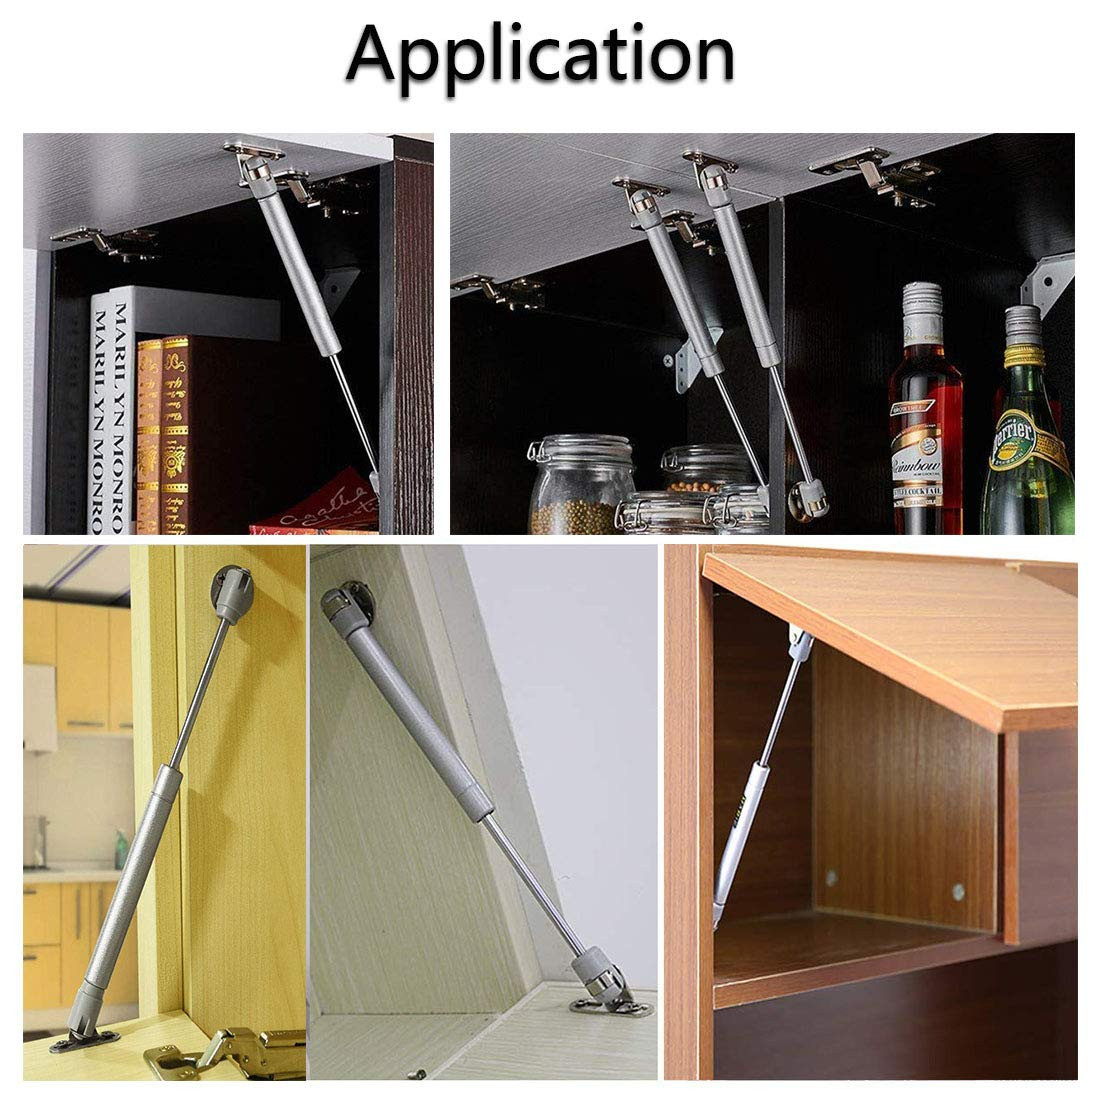 Gas Lift Strut Pack of 4 Jestool Kitchen Cupboard Wardrobe Cabinet Door Pneumatic Support Gas Spring Strut Damper Hinge with 100N for Flap Fittings Soft Closing Stay